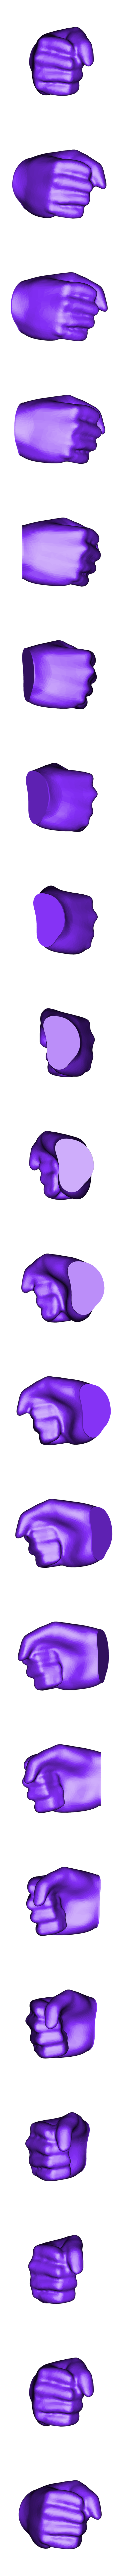 SG_FaceP_Hand_2_White.stl Download free STL file Space Ghost - Facepalm • 3D printable model, mag-net